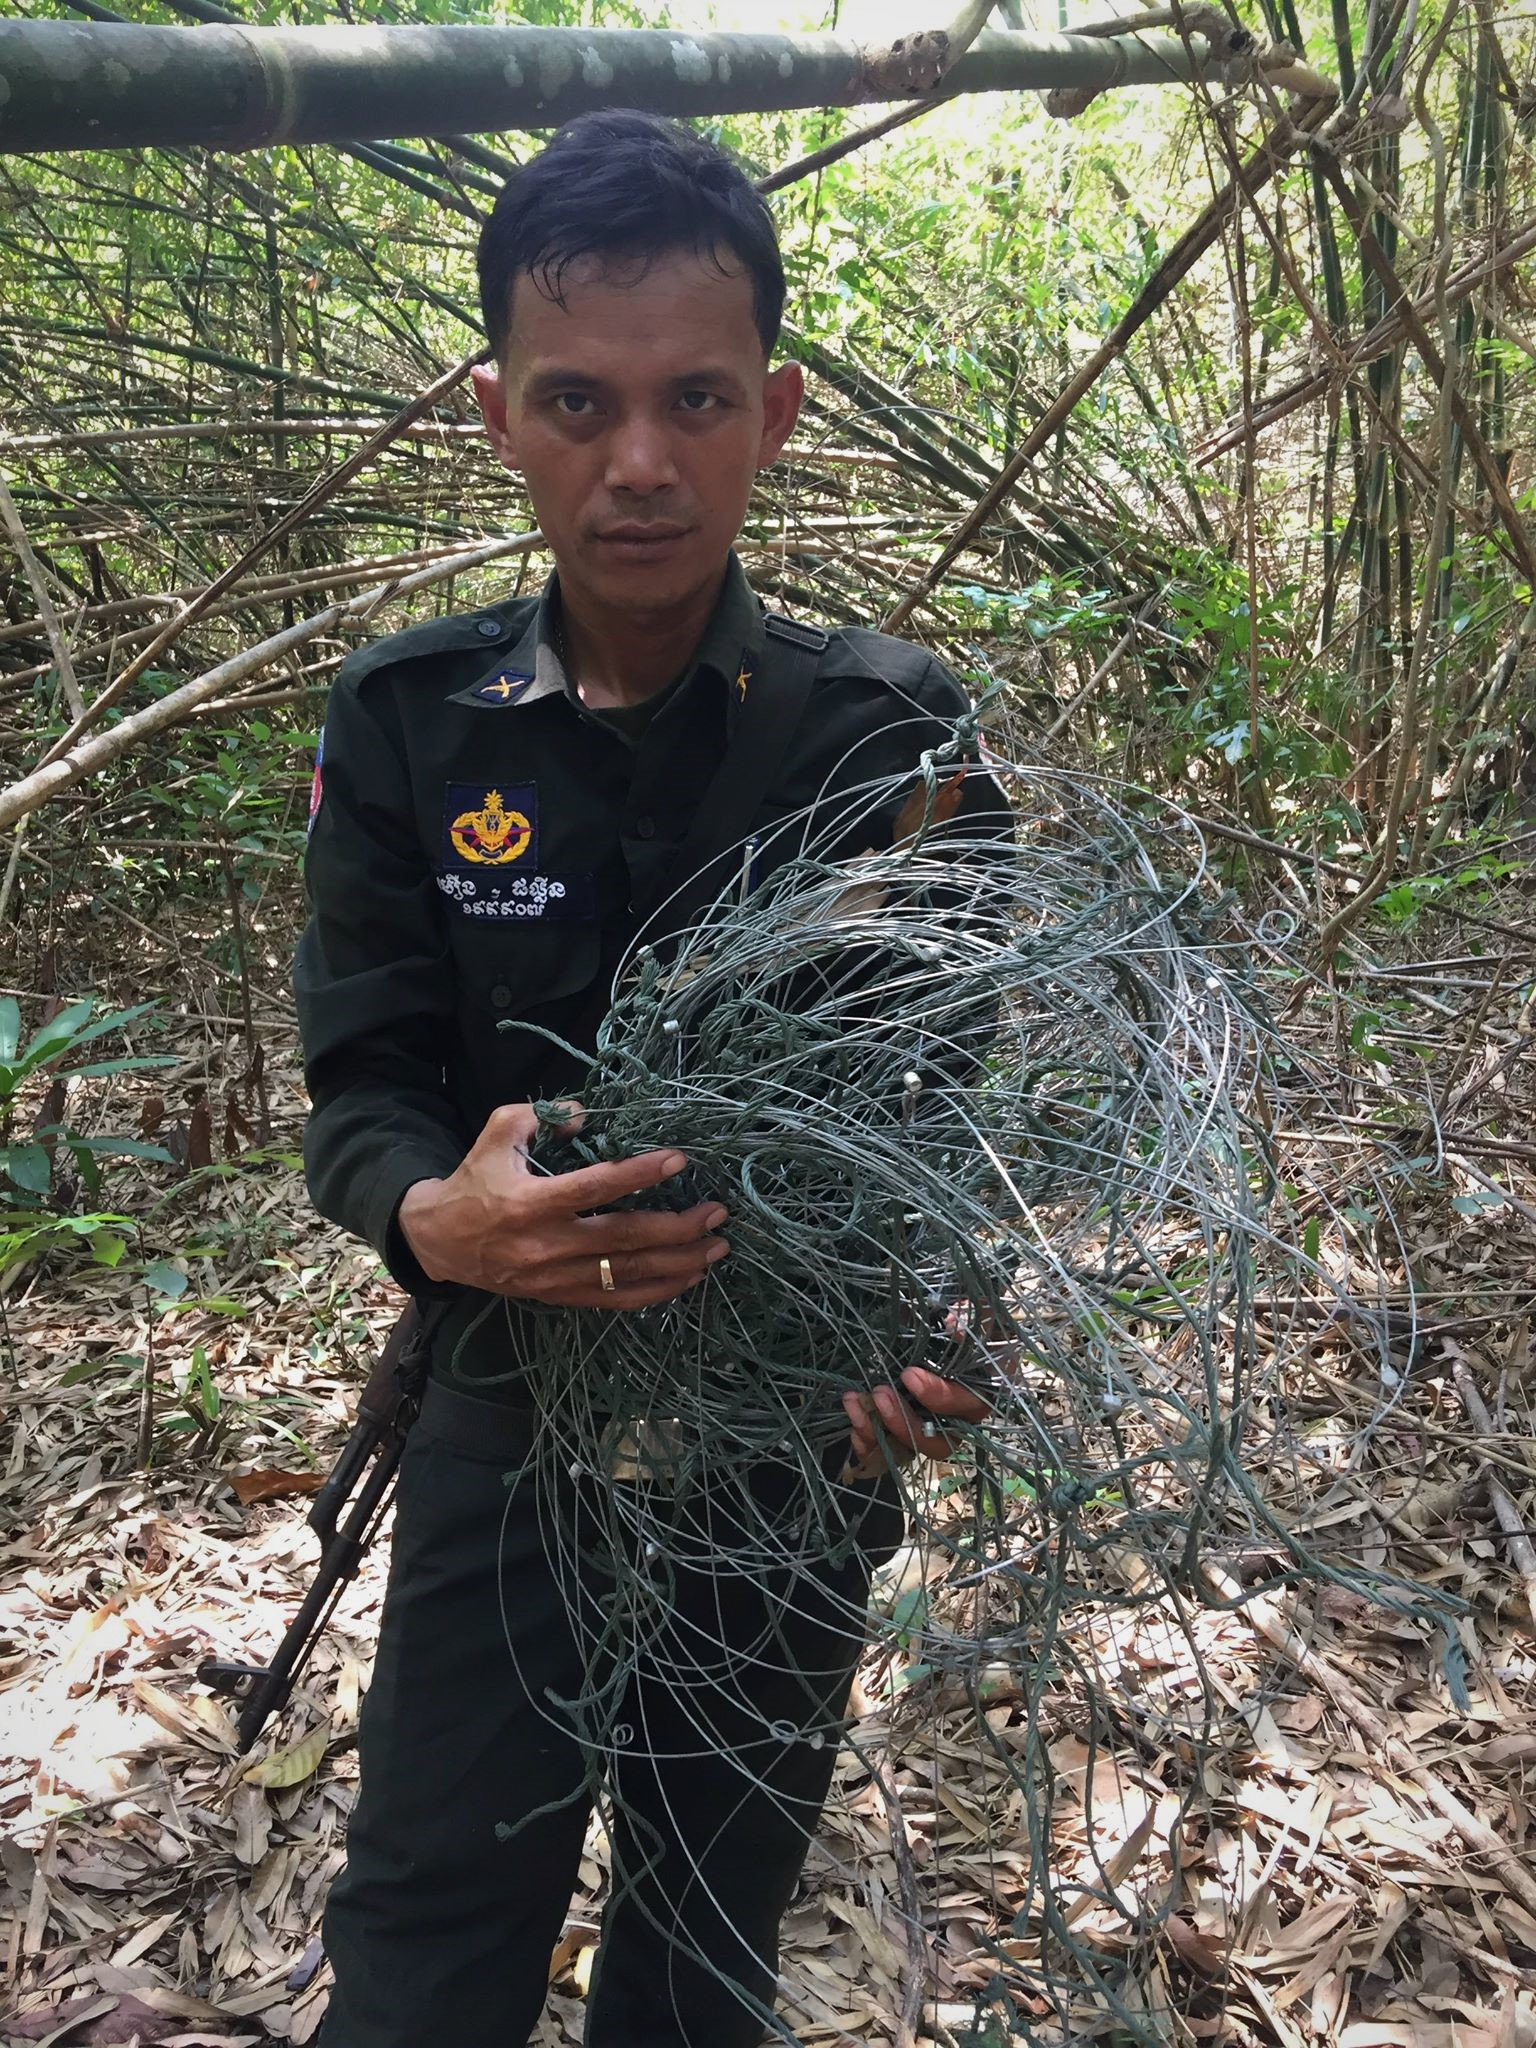 ban snares Call for ban of snares – Dhole caught in snares graphic content forest rangers collecting snares